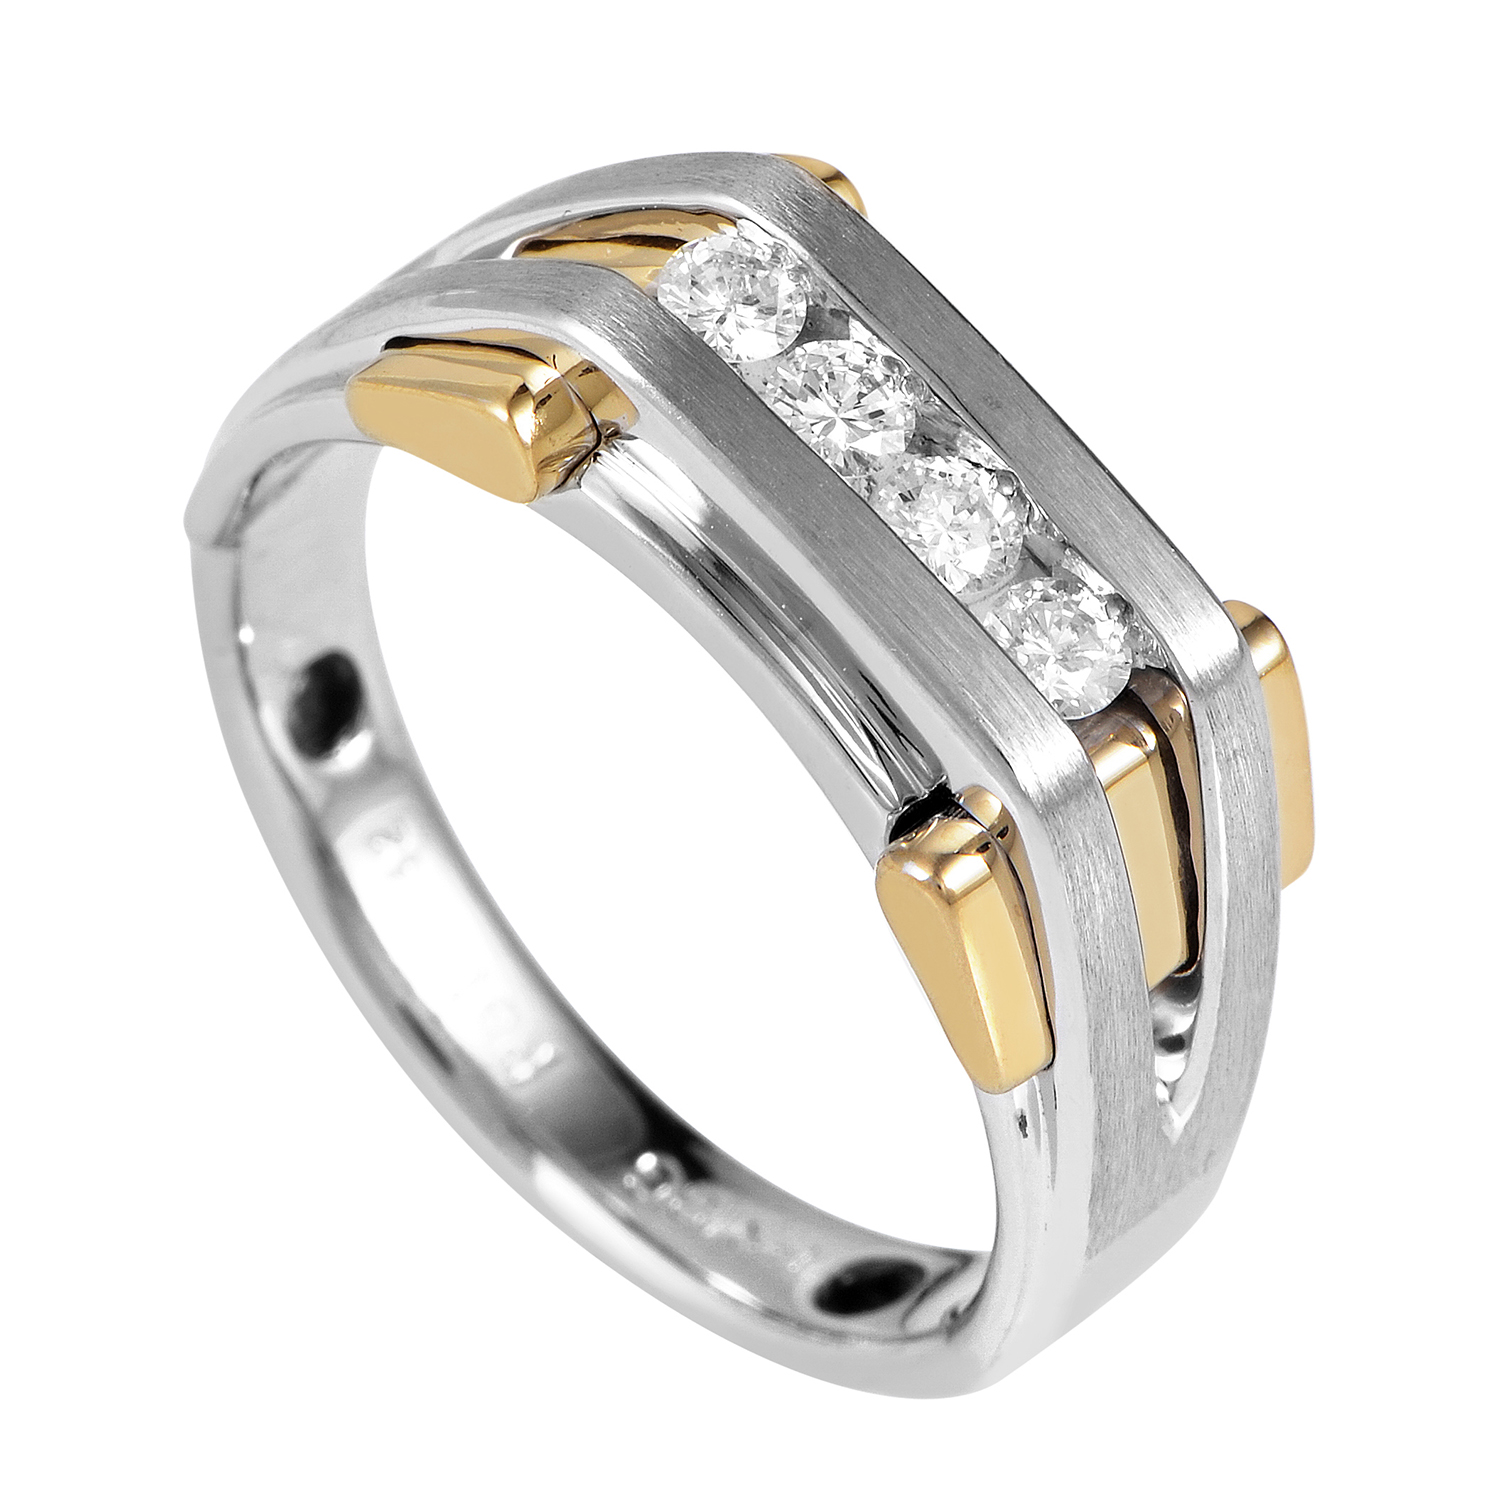 Men's 14K Multi-Tone Gold Diamond Band Ring 63743XGW4X